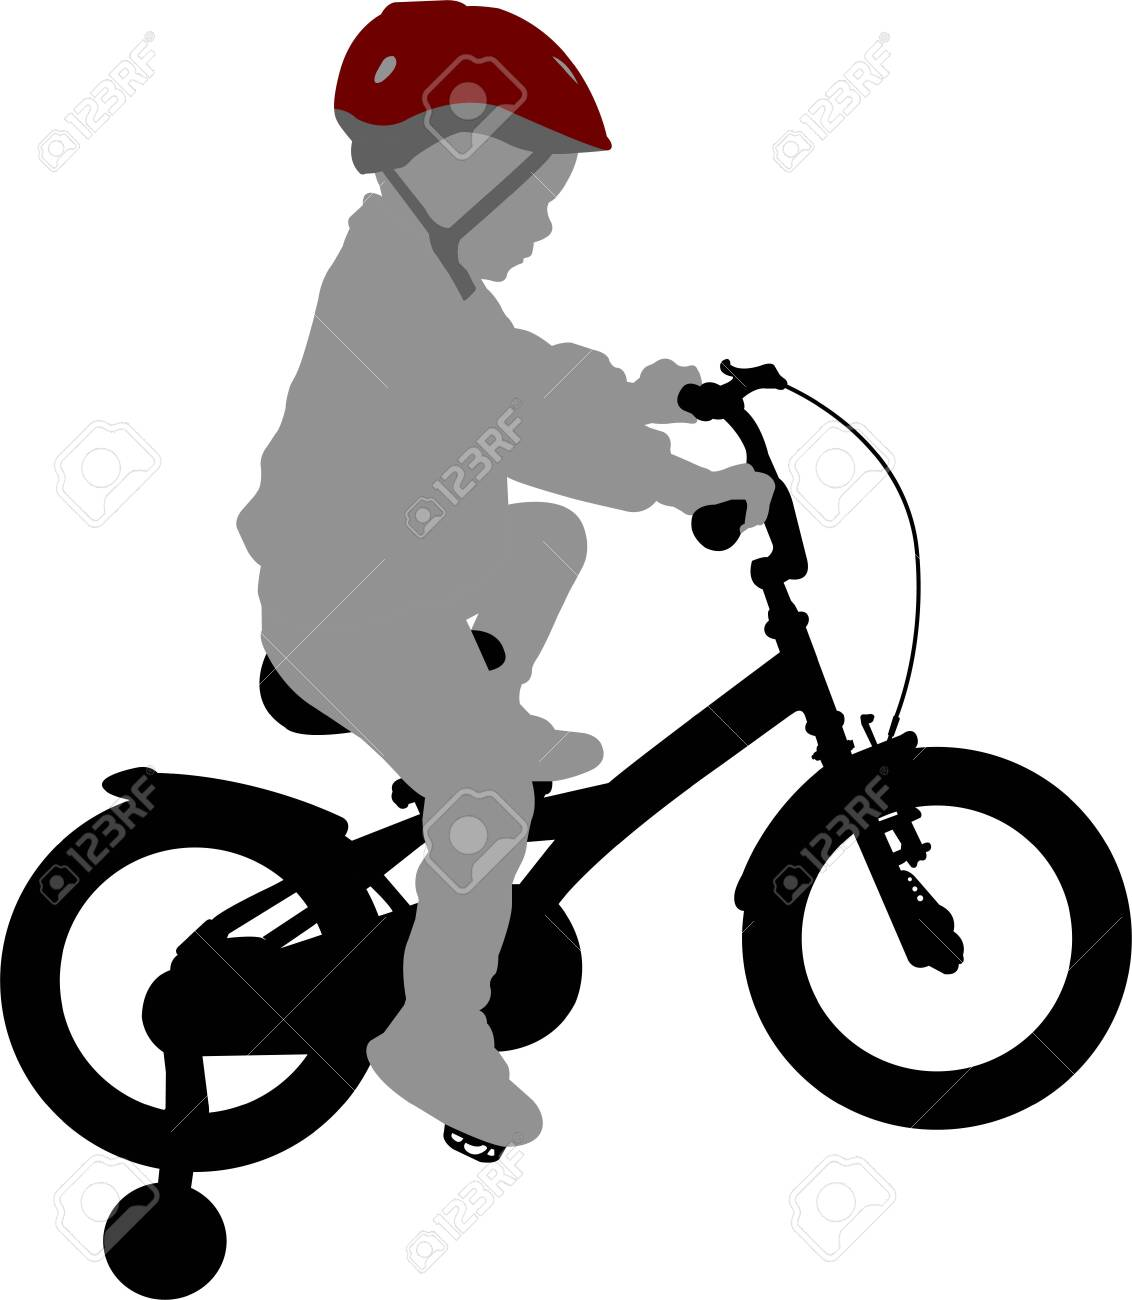 little boy riding bicycle high quality silhouette - vector - 133948894